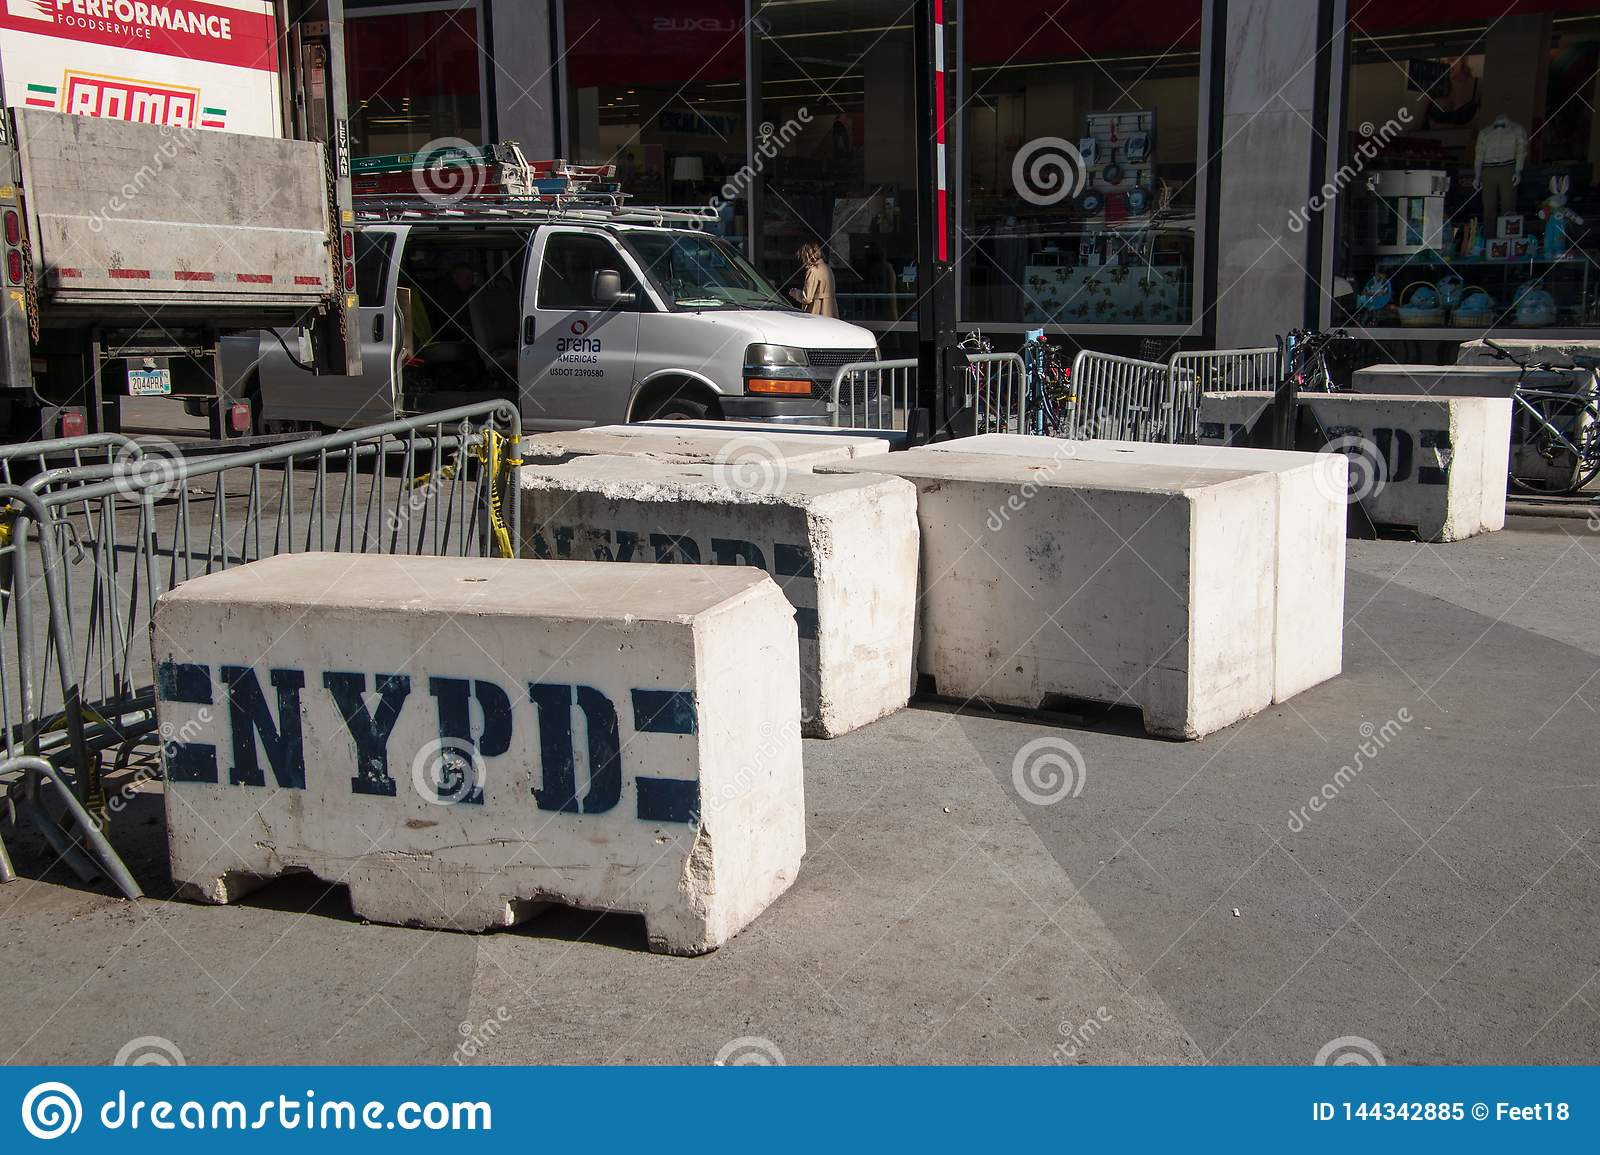 Concrete and metal NYPD street barricades on a Manhattan New York street near a police station